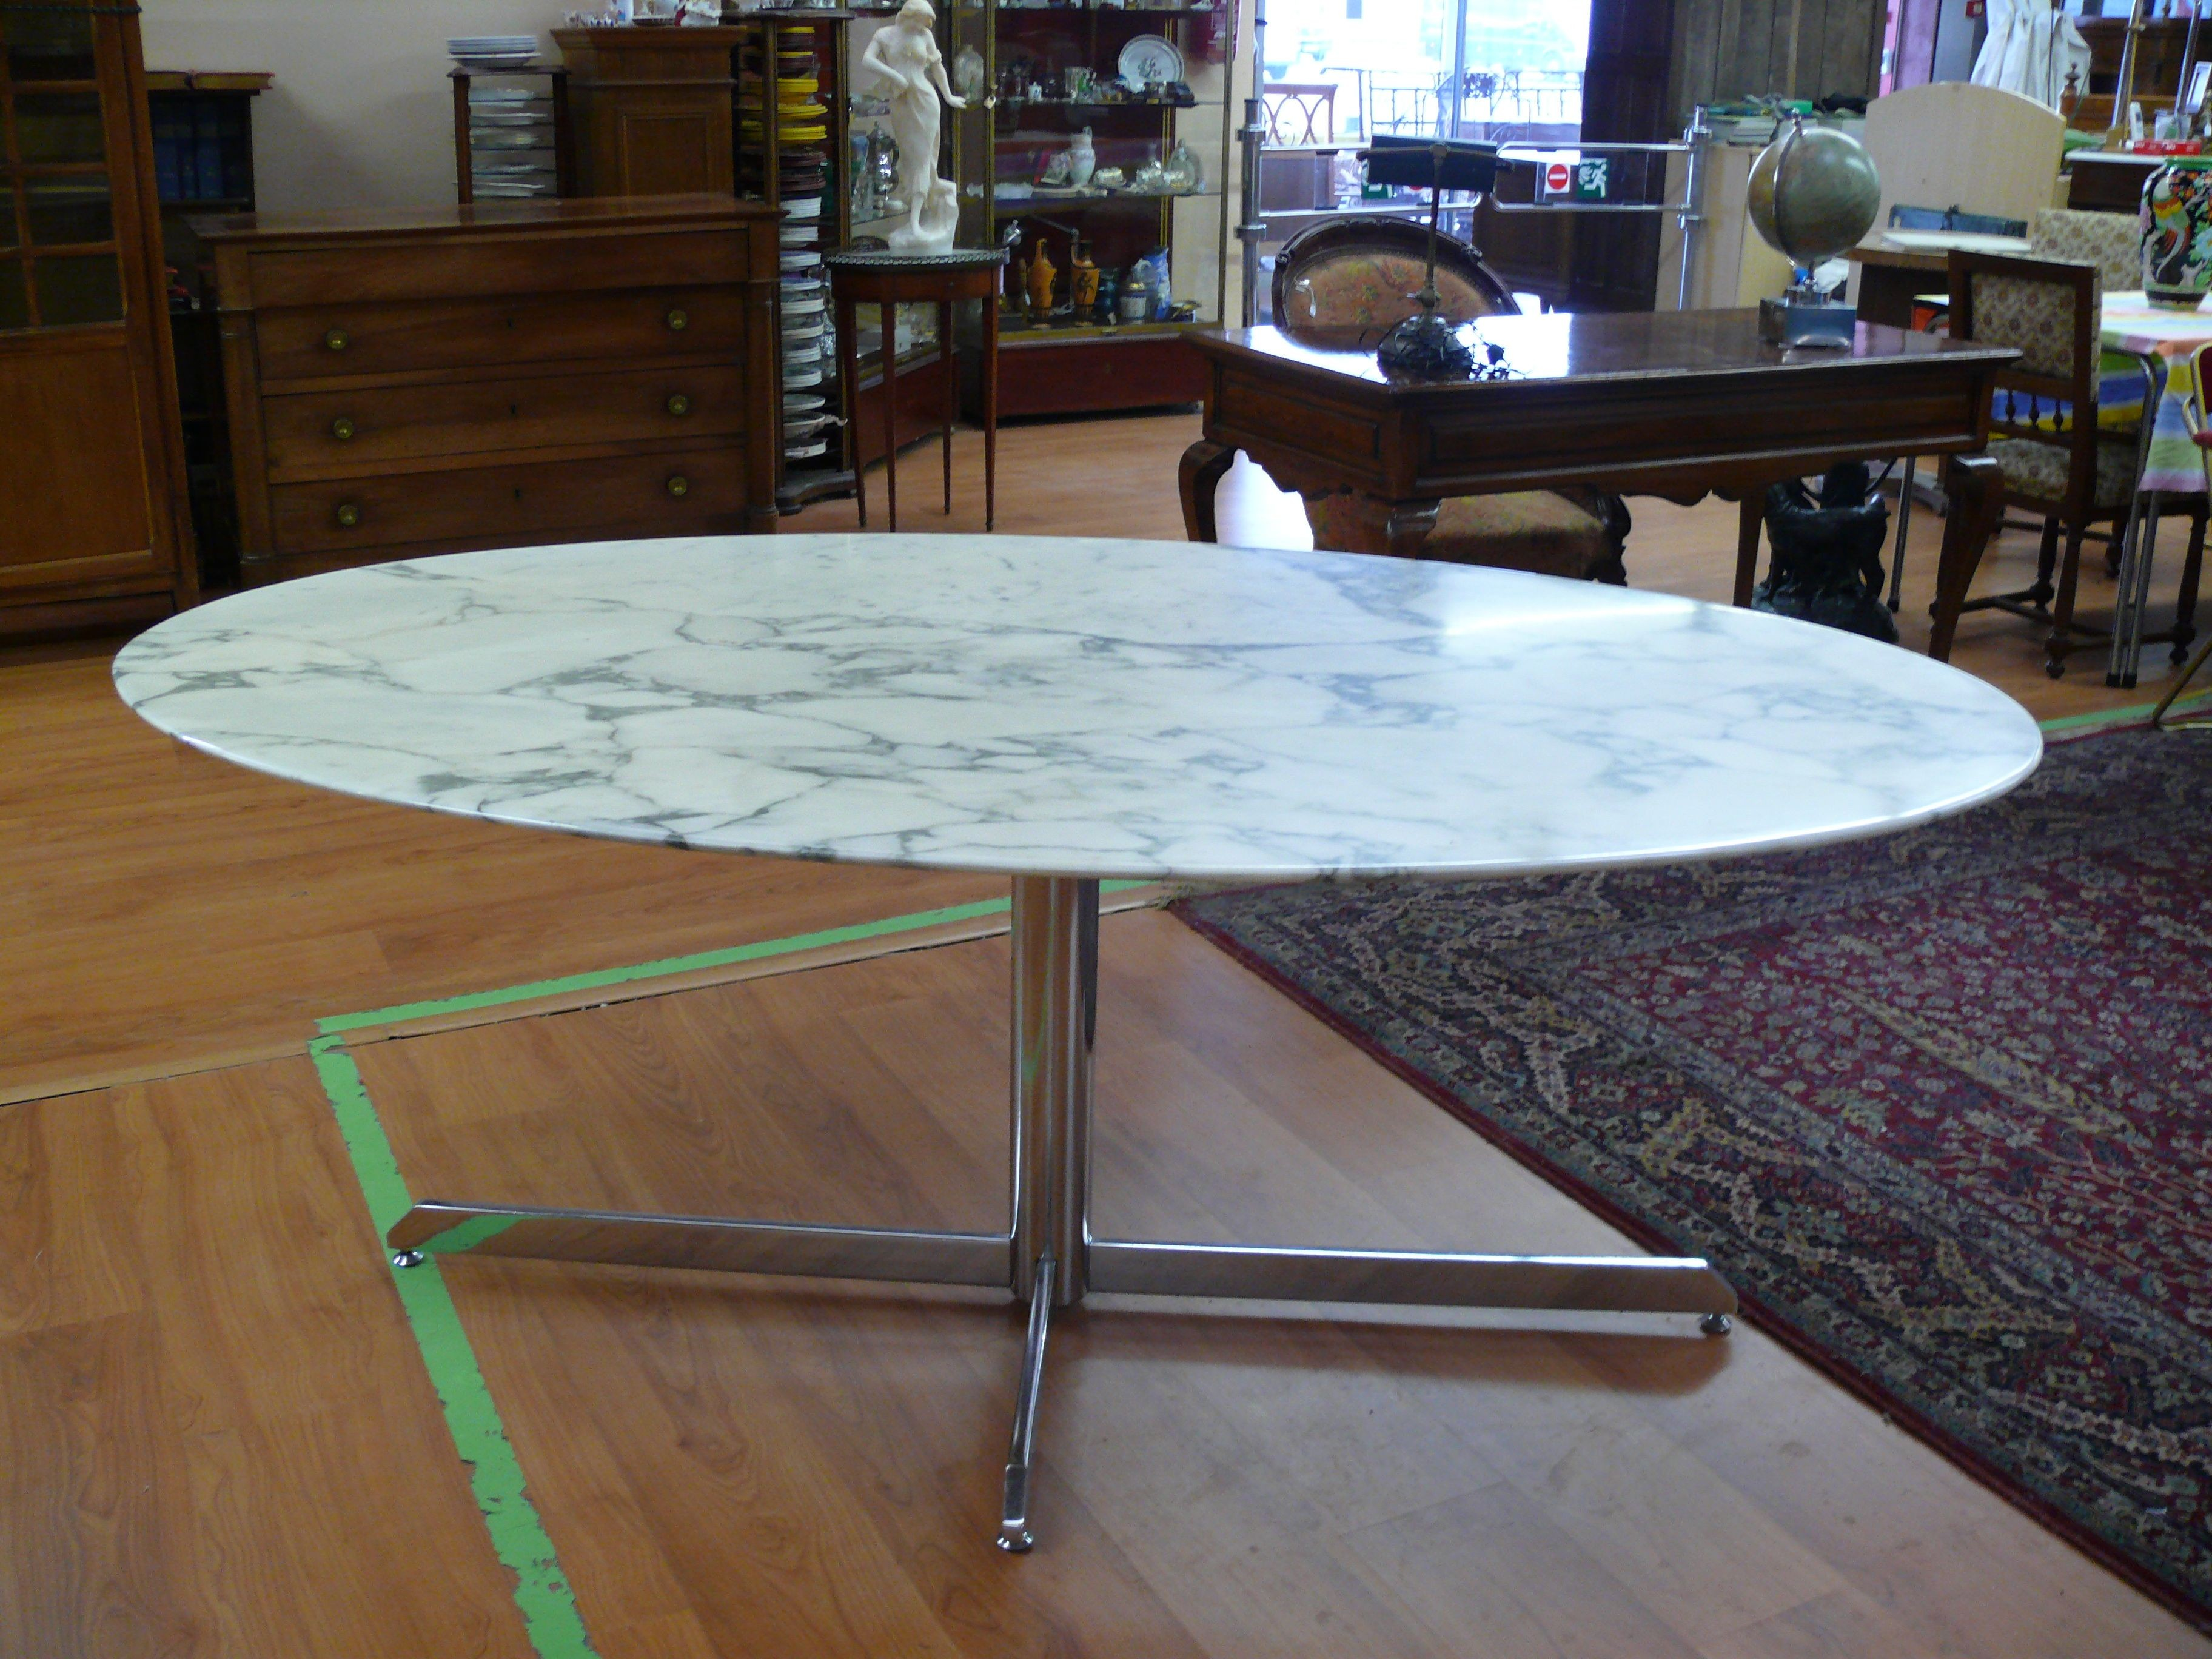 finest vintage roche bobois marble dining table s sold with table ronde roche bobois. Black Bedroom Furniture Sets. Home Design Ideas